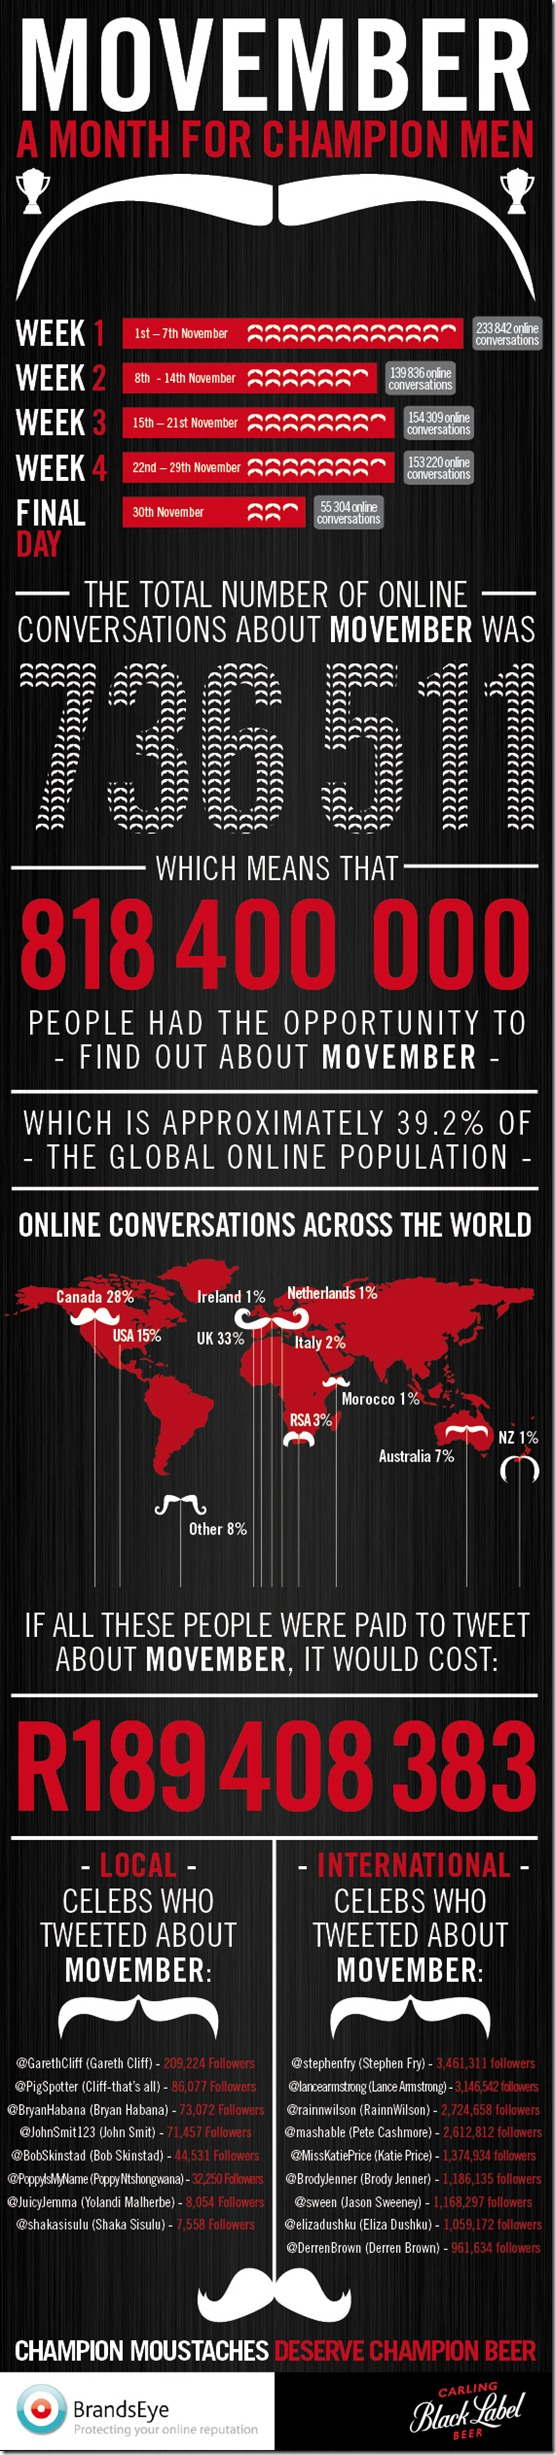 CBL Movember Infographic